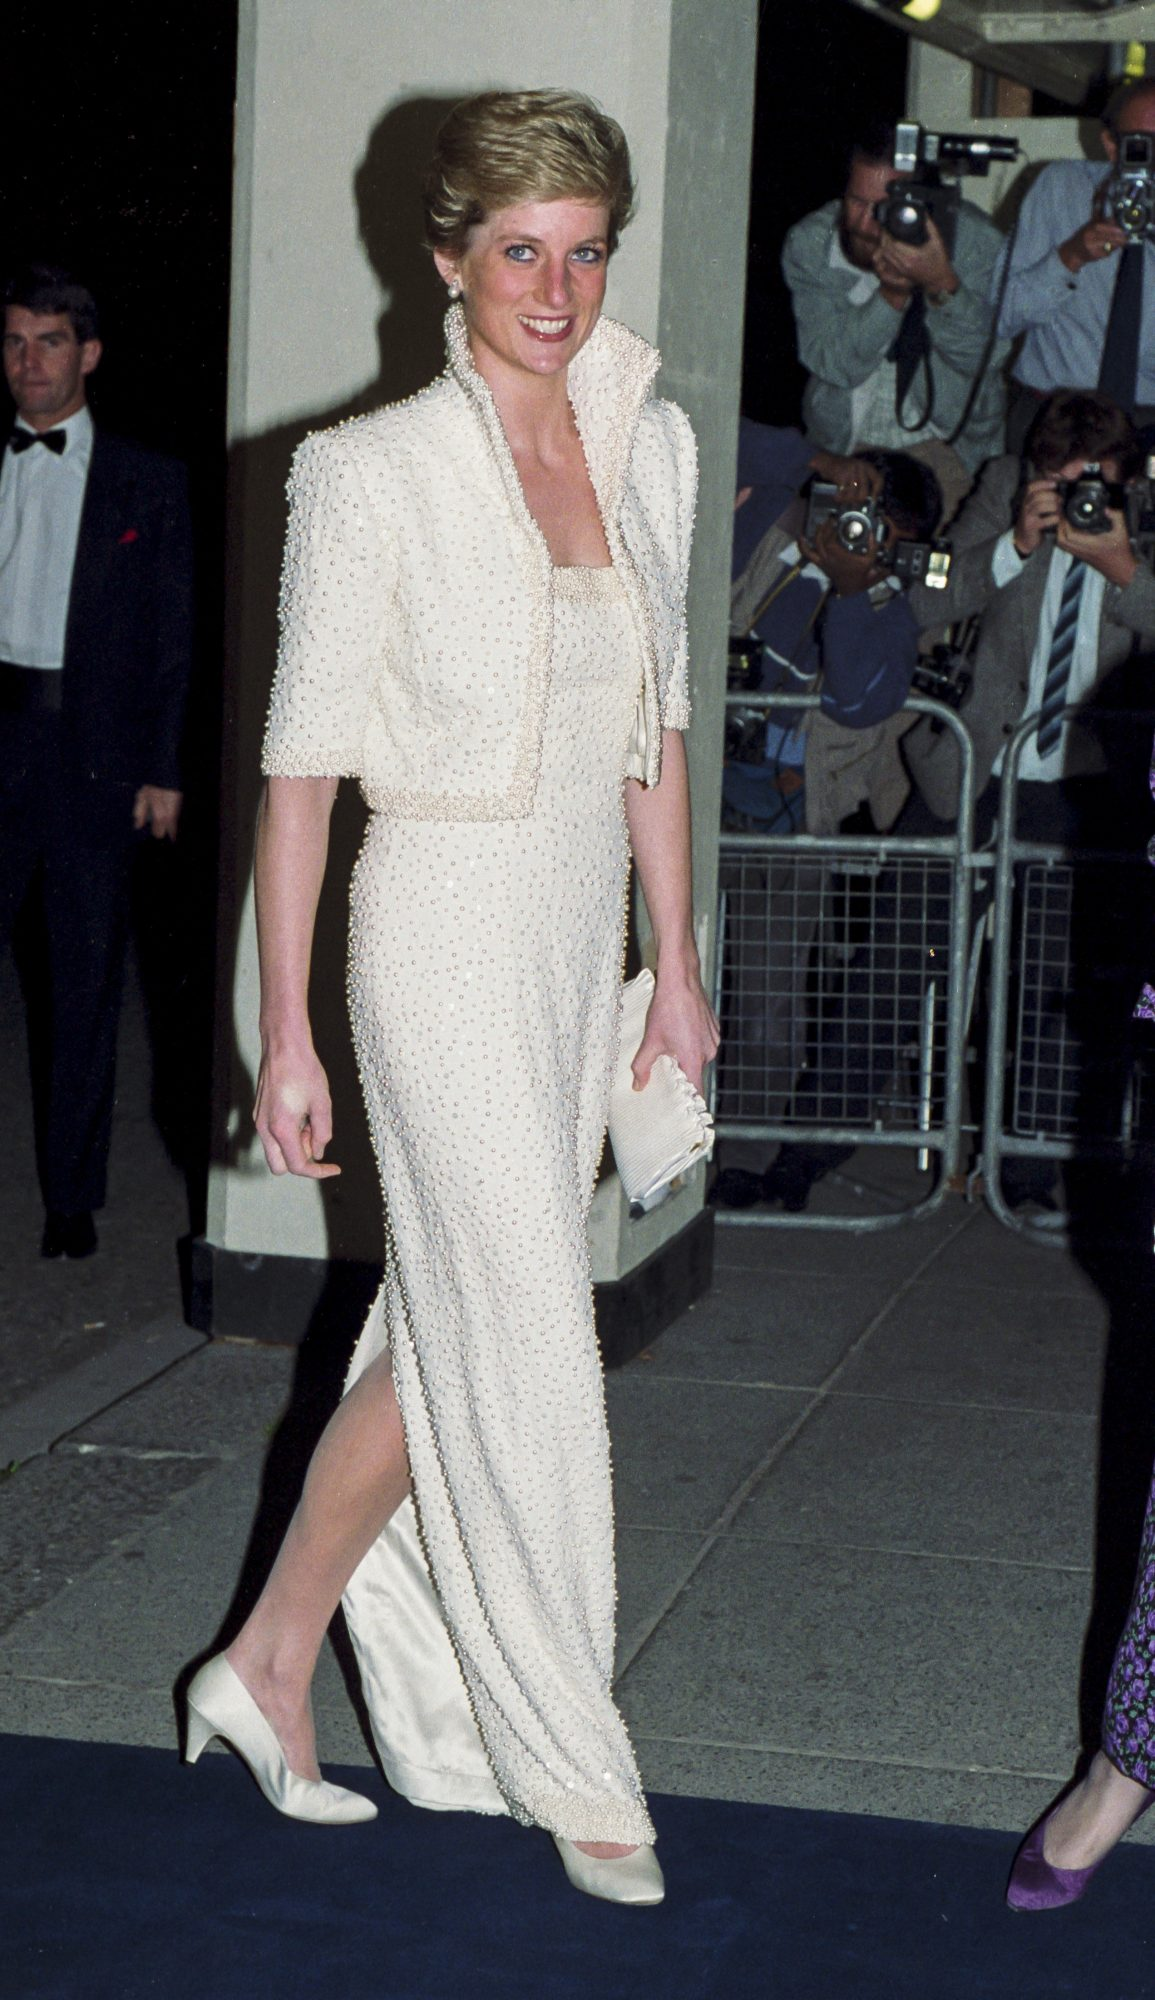 Diana, Princess of Wales attends a British Fashion Awards